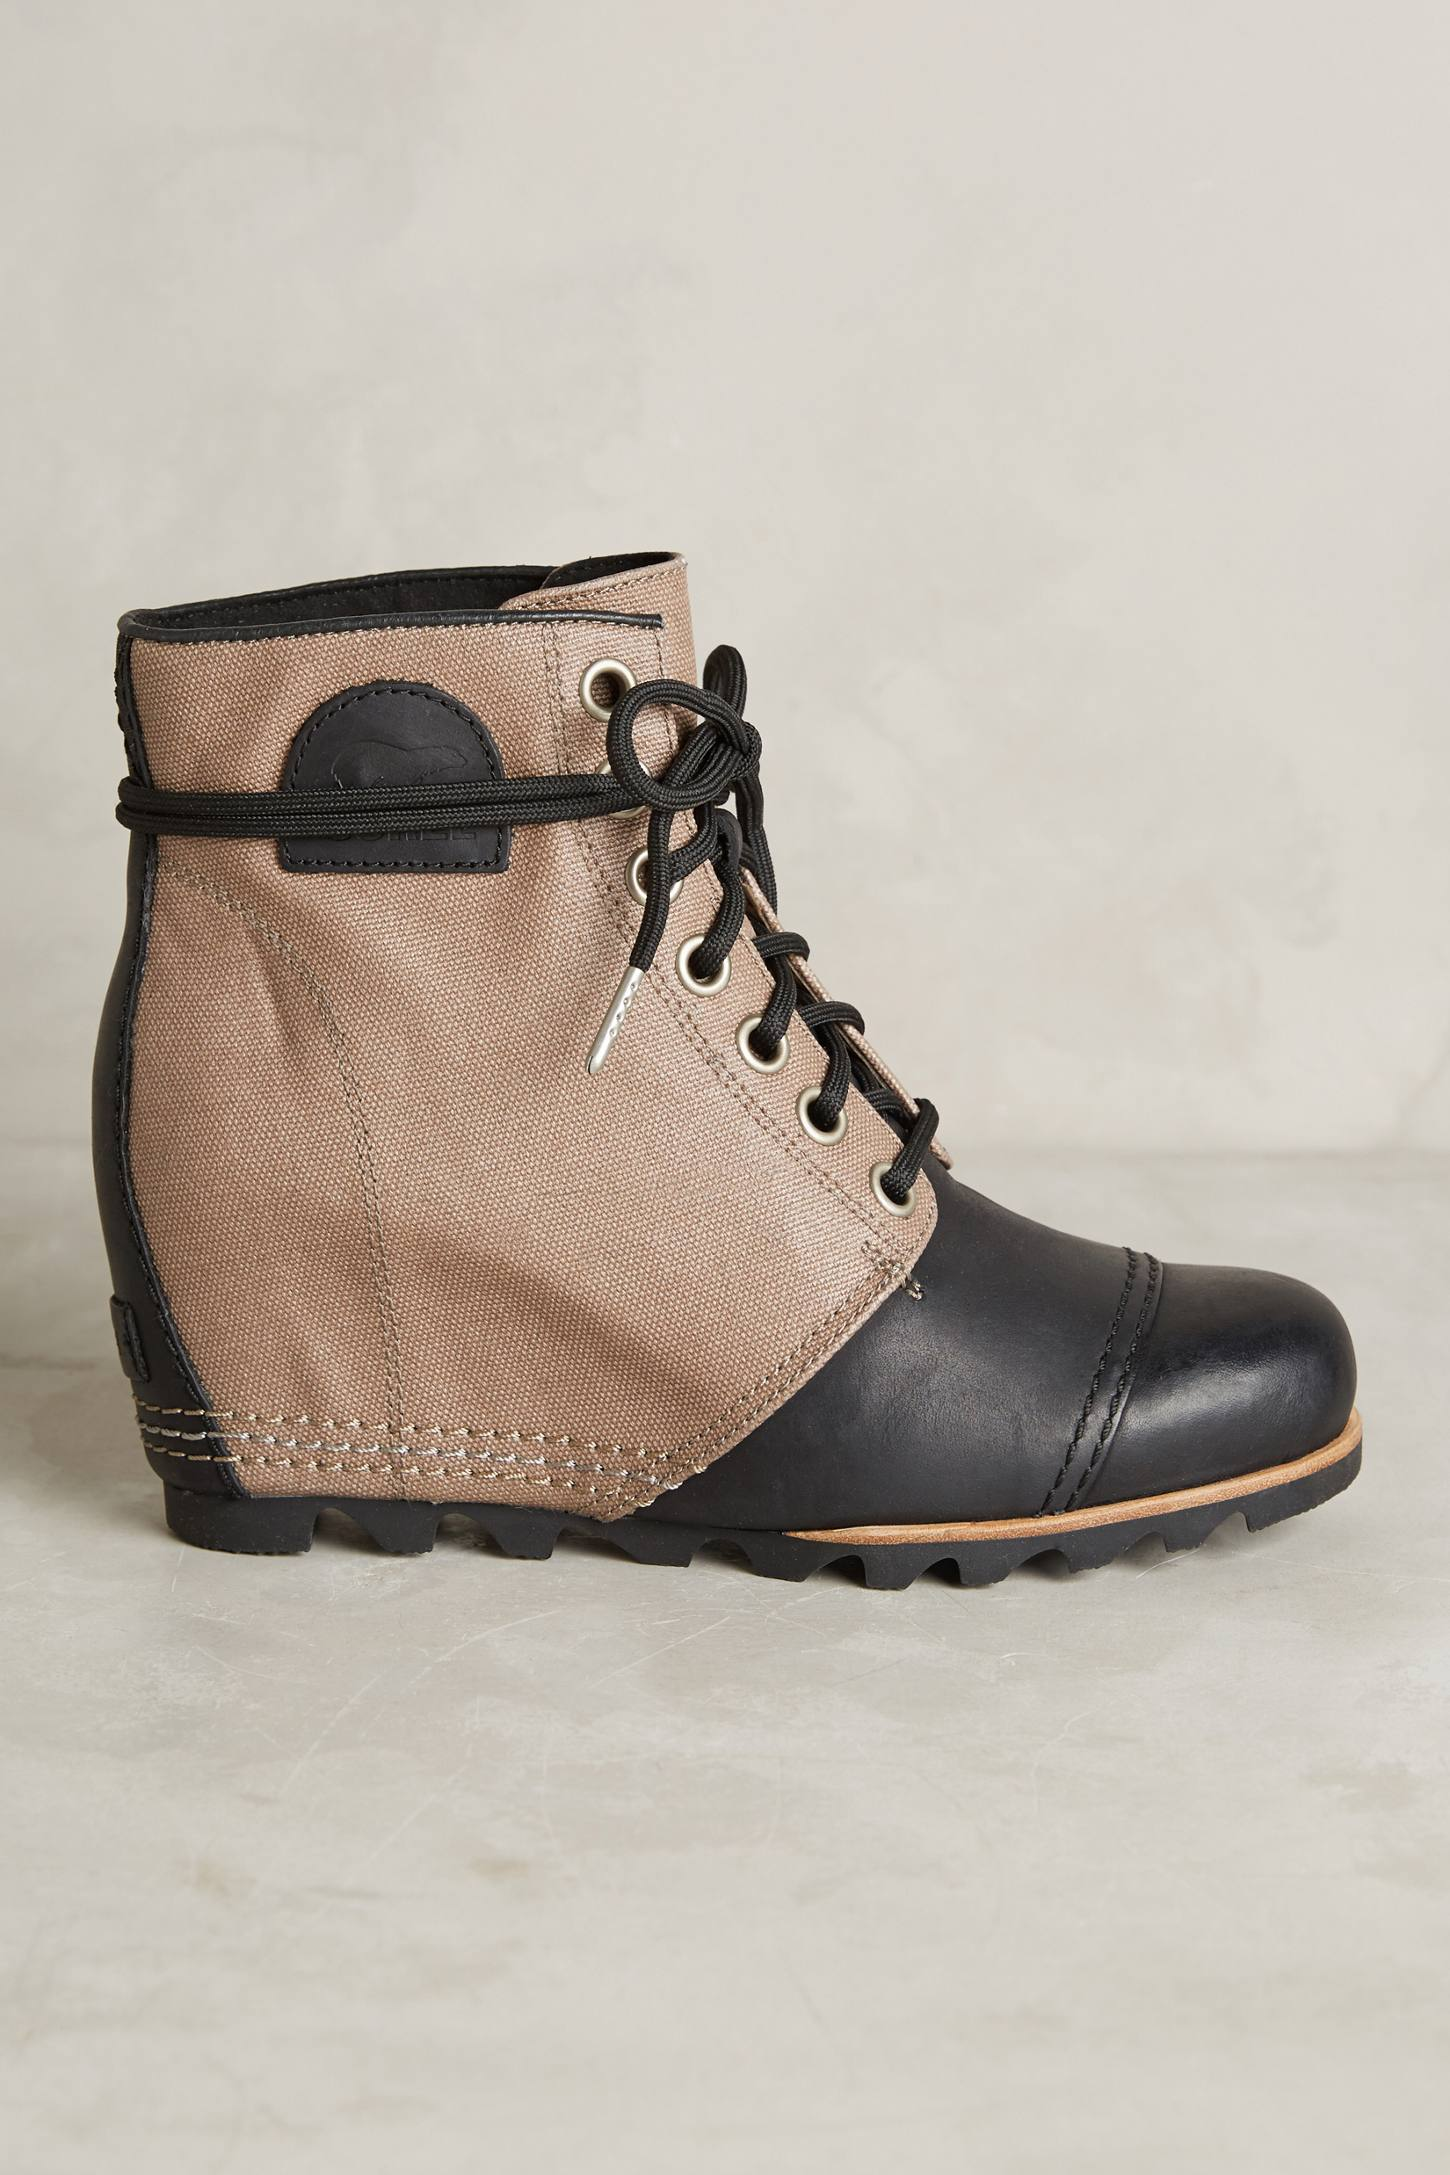 Sorel 1964 Premium Wedge Boots